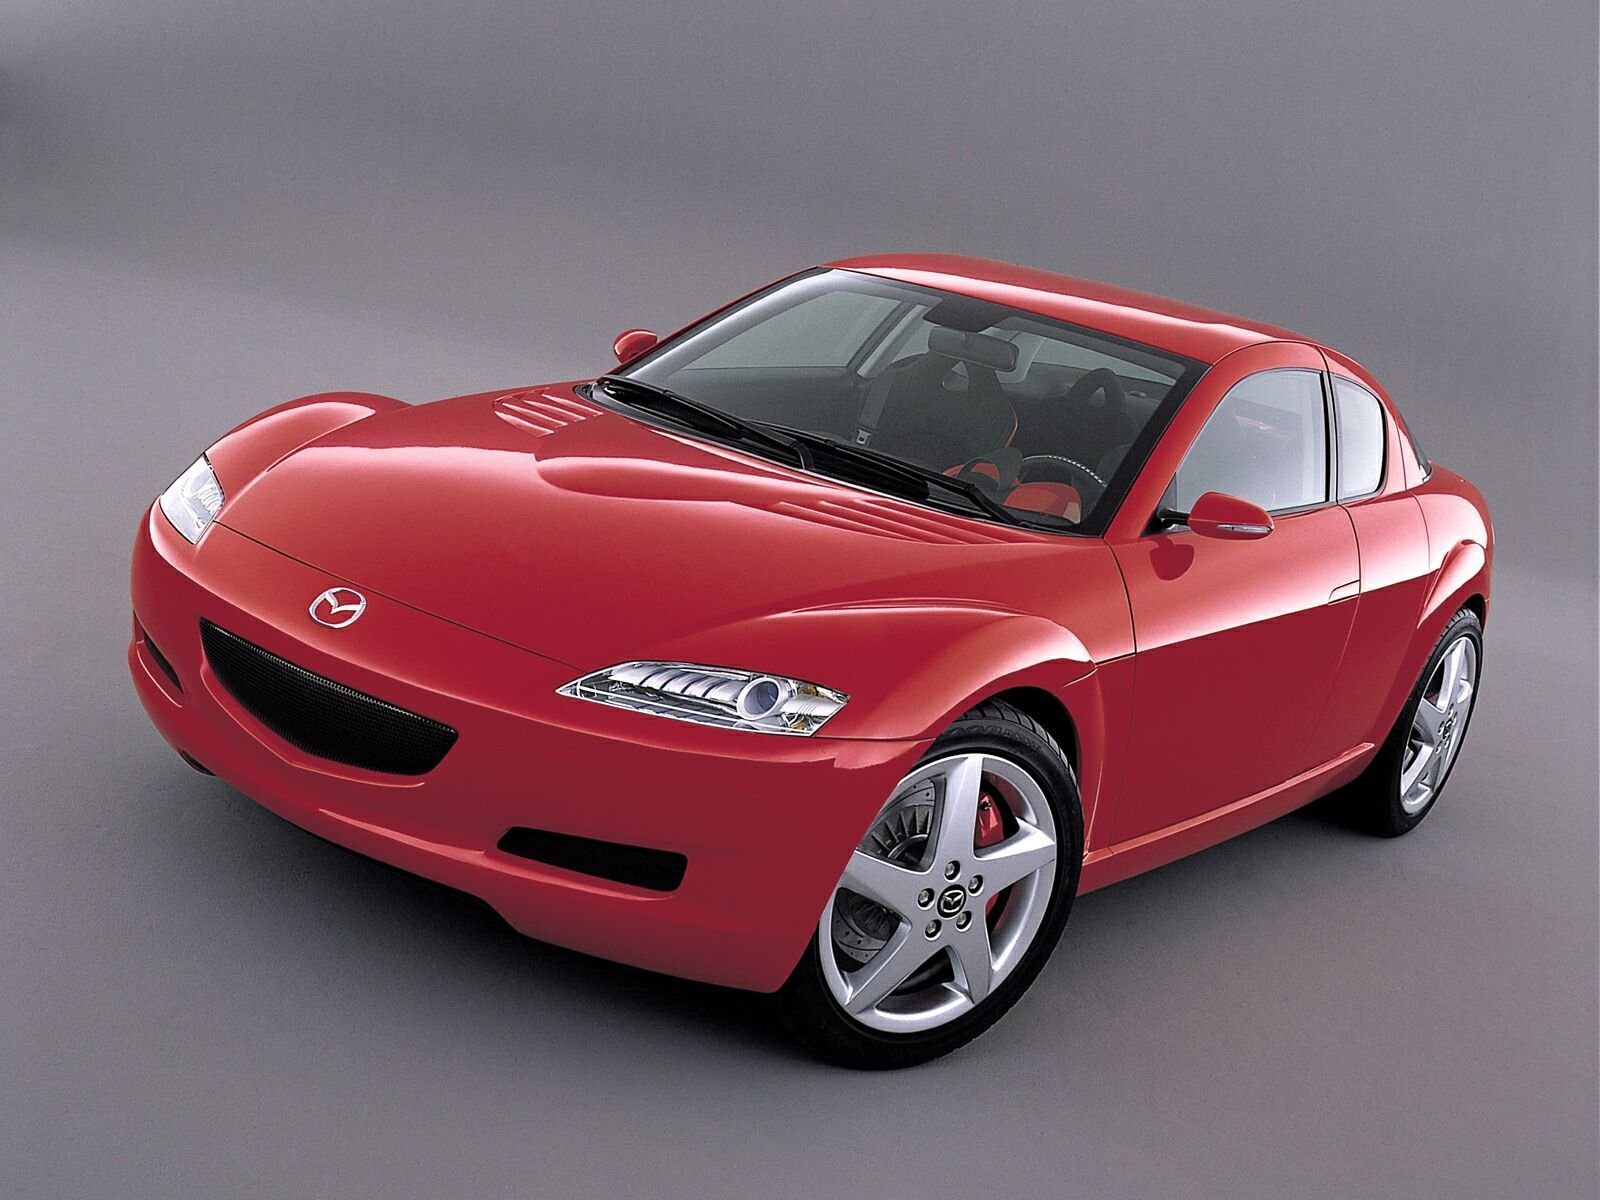 2005 mazda rx 8 review top speed. Black Bedroom Furniture Sets. Home Design Ideas